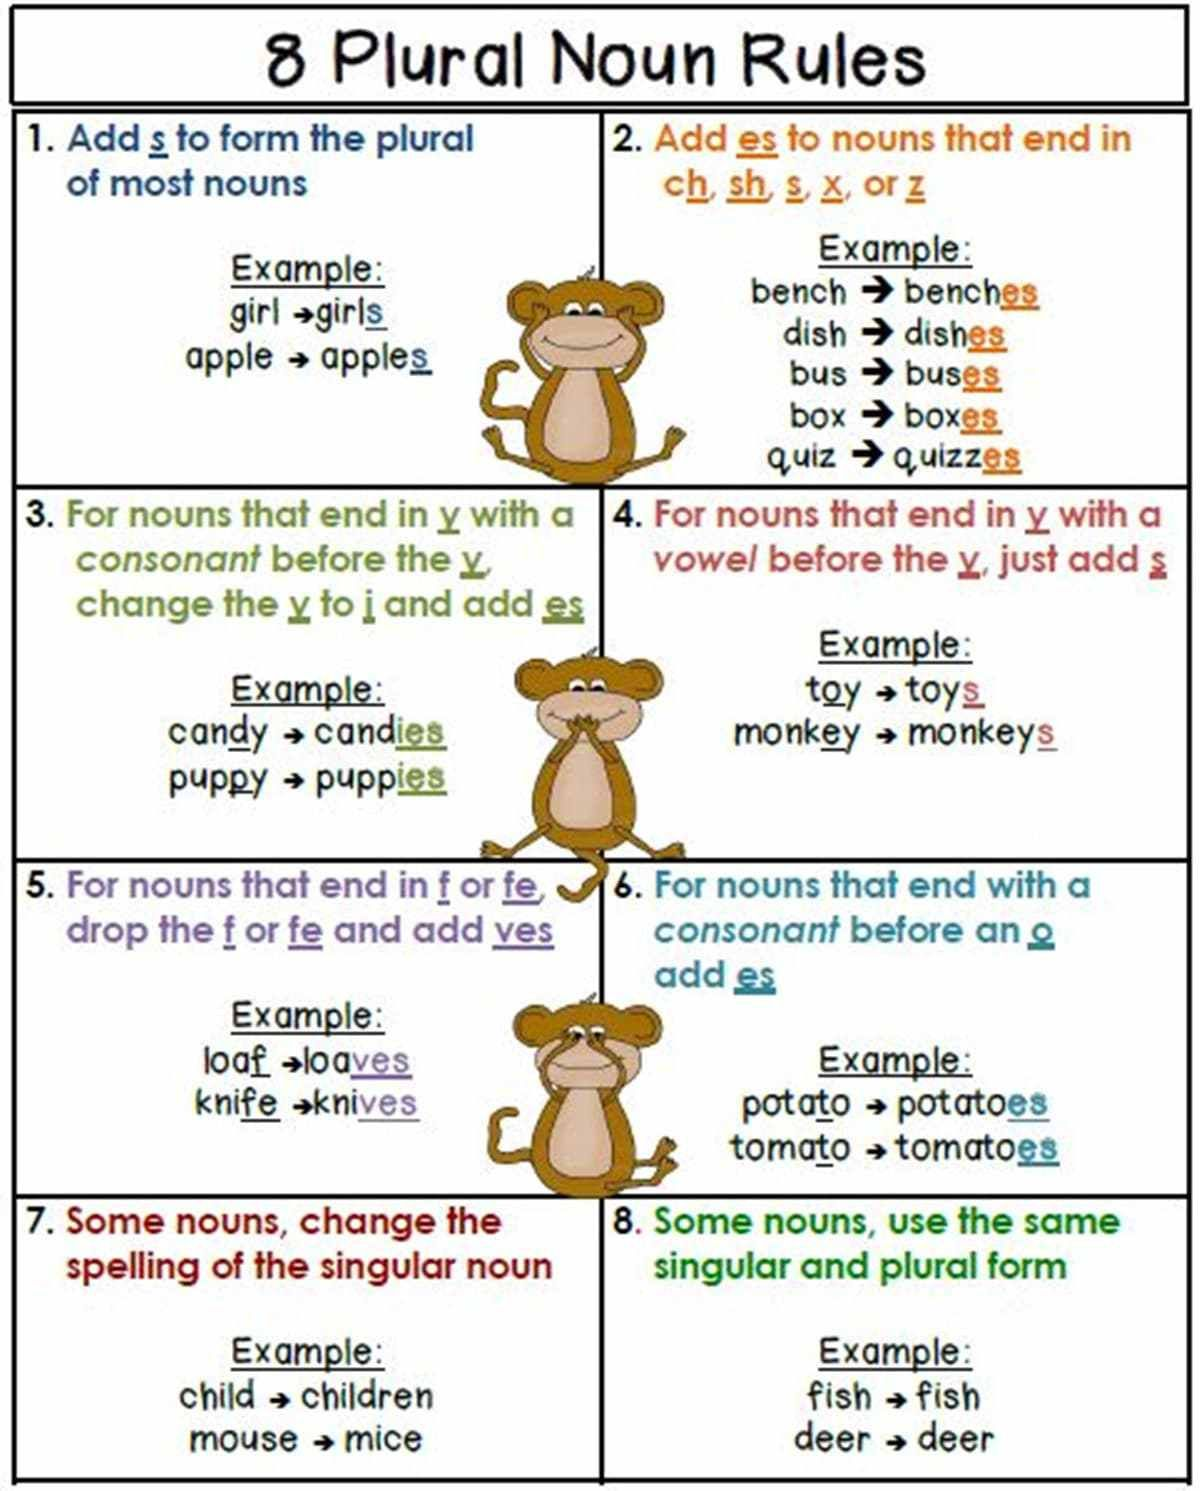 Singular and Plural Nouns Definitions, Rules & Examples